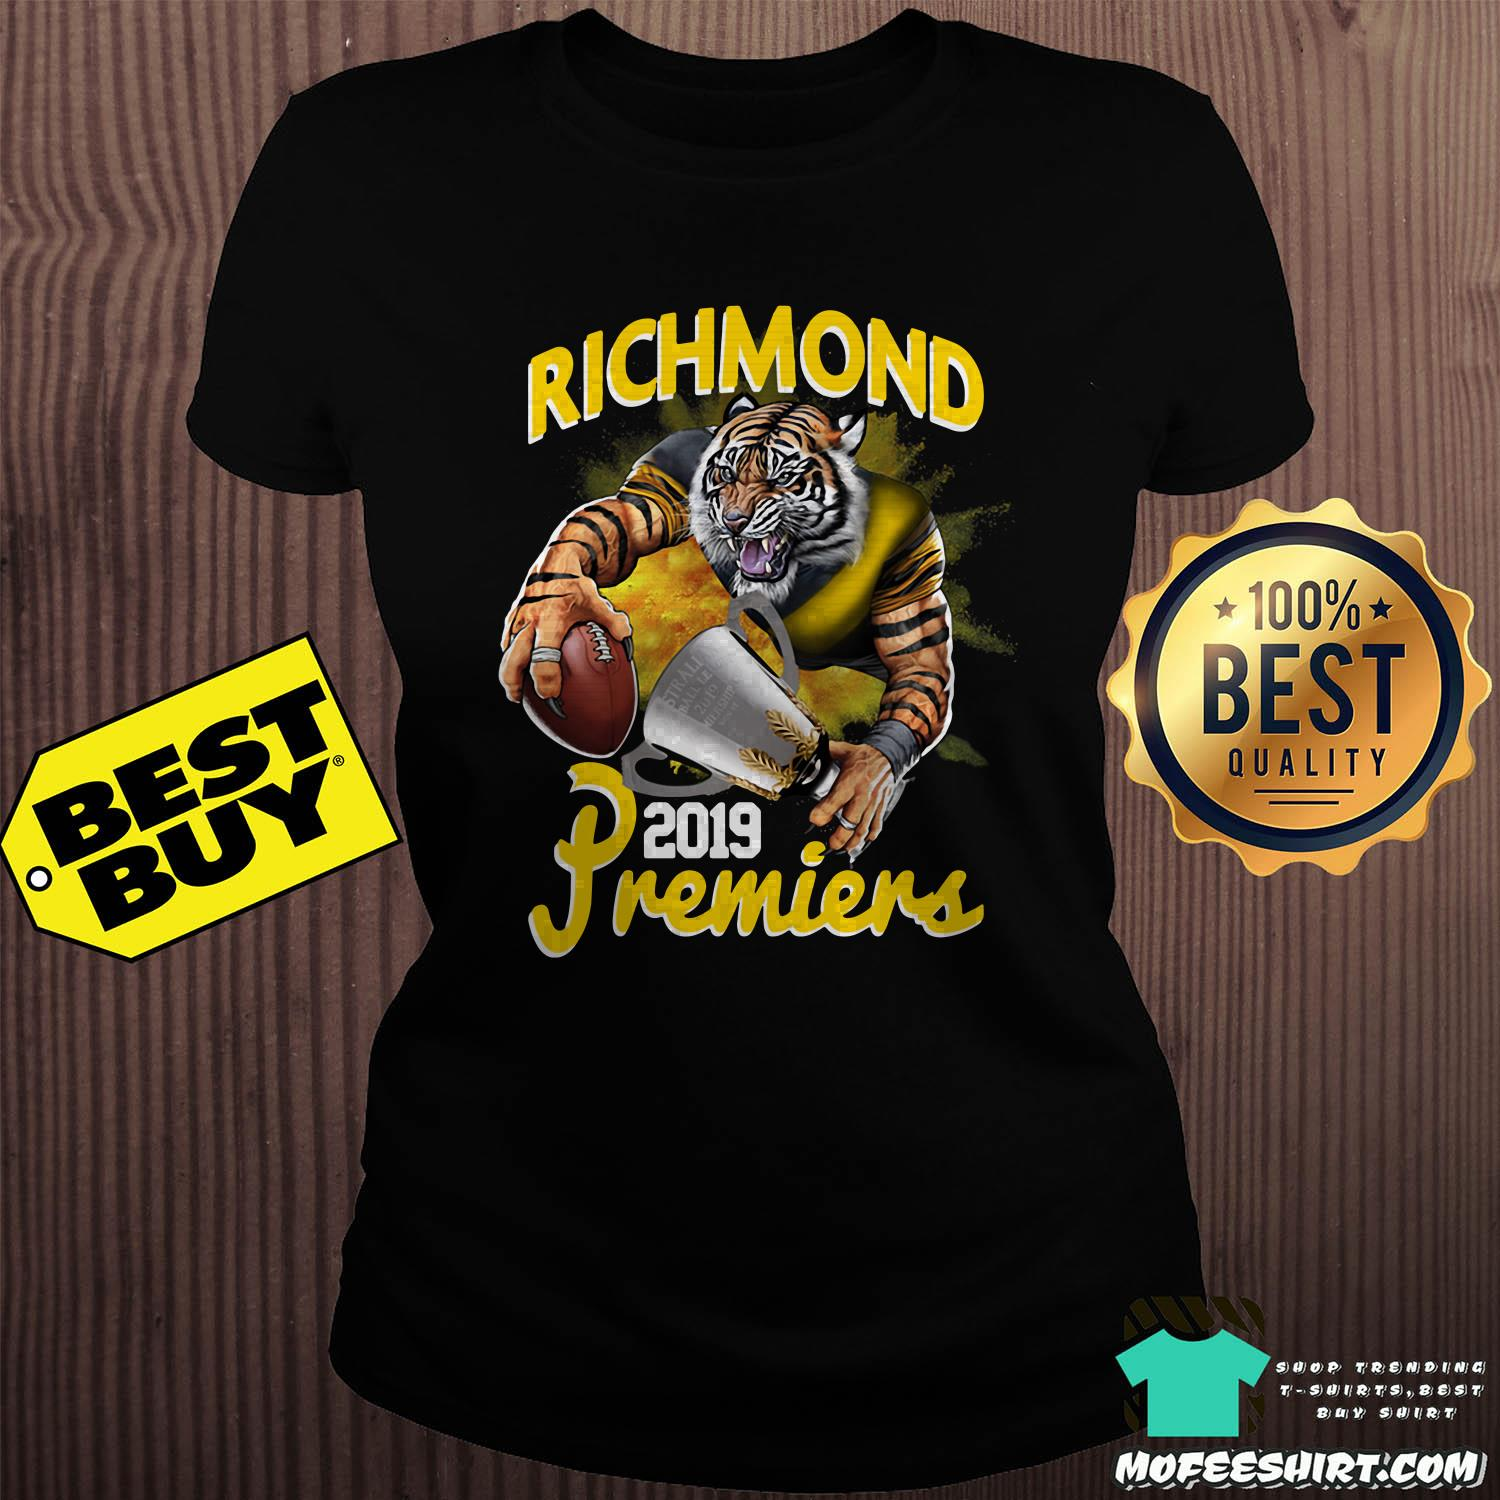 afl richmond tigers premiers 2019 ladies tee - AFL Richmond Tigers Premiers 2019 shirt